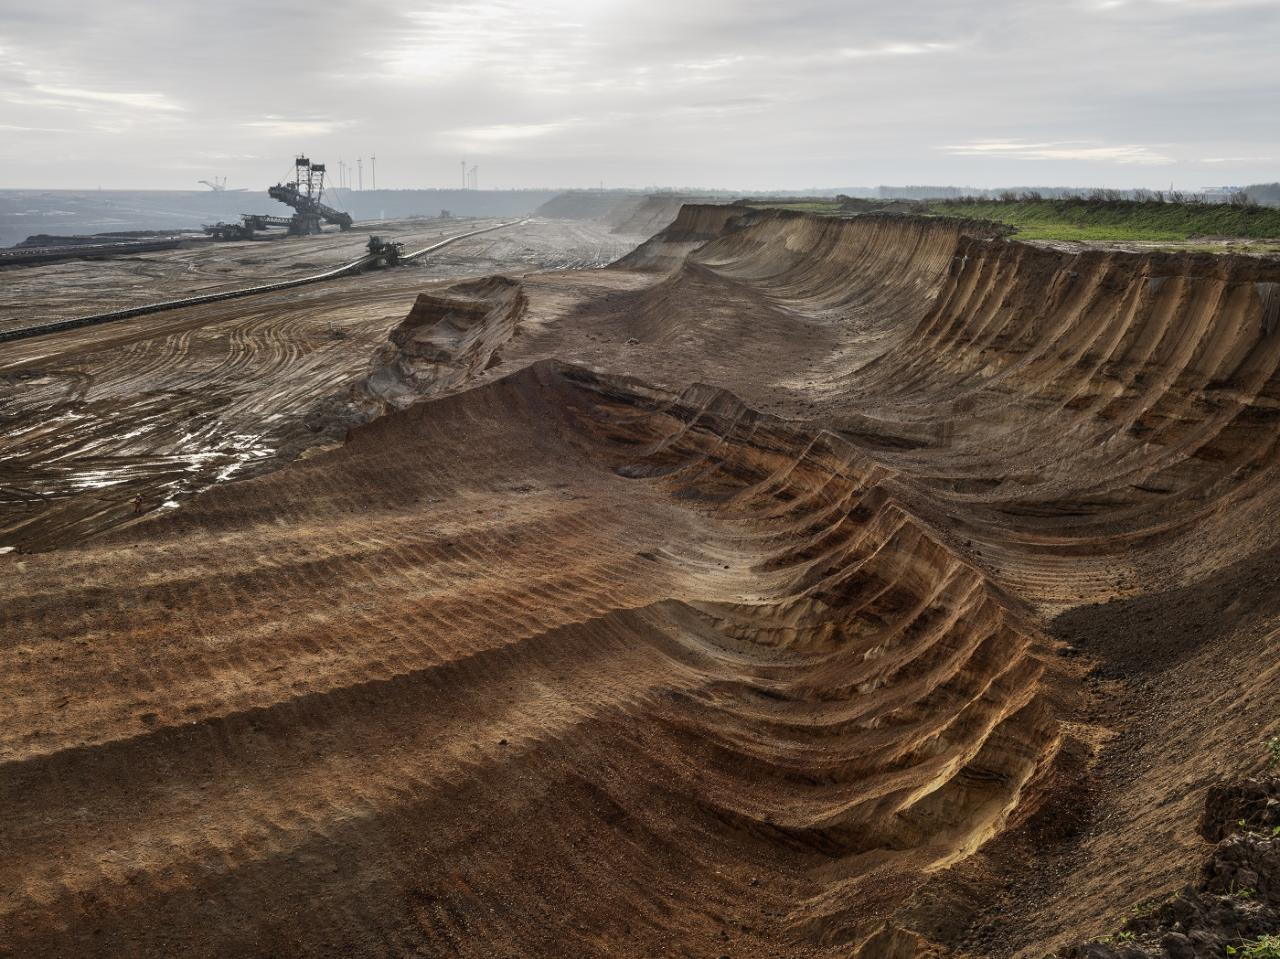 <p>Edward Burtynsky, Coal Mine #1, North Rhine,<br />Westphalia, Germany, 2105. Pigment inkjet print,<br />58 ½ x 78 inches. Courtesy of the artist and<br />Nicholas Metivier Gallery, Toronto. © Edward<br />Burtynsky, 2017. </p>